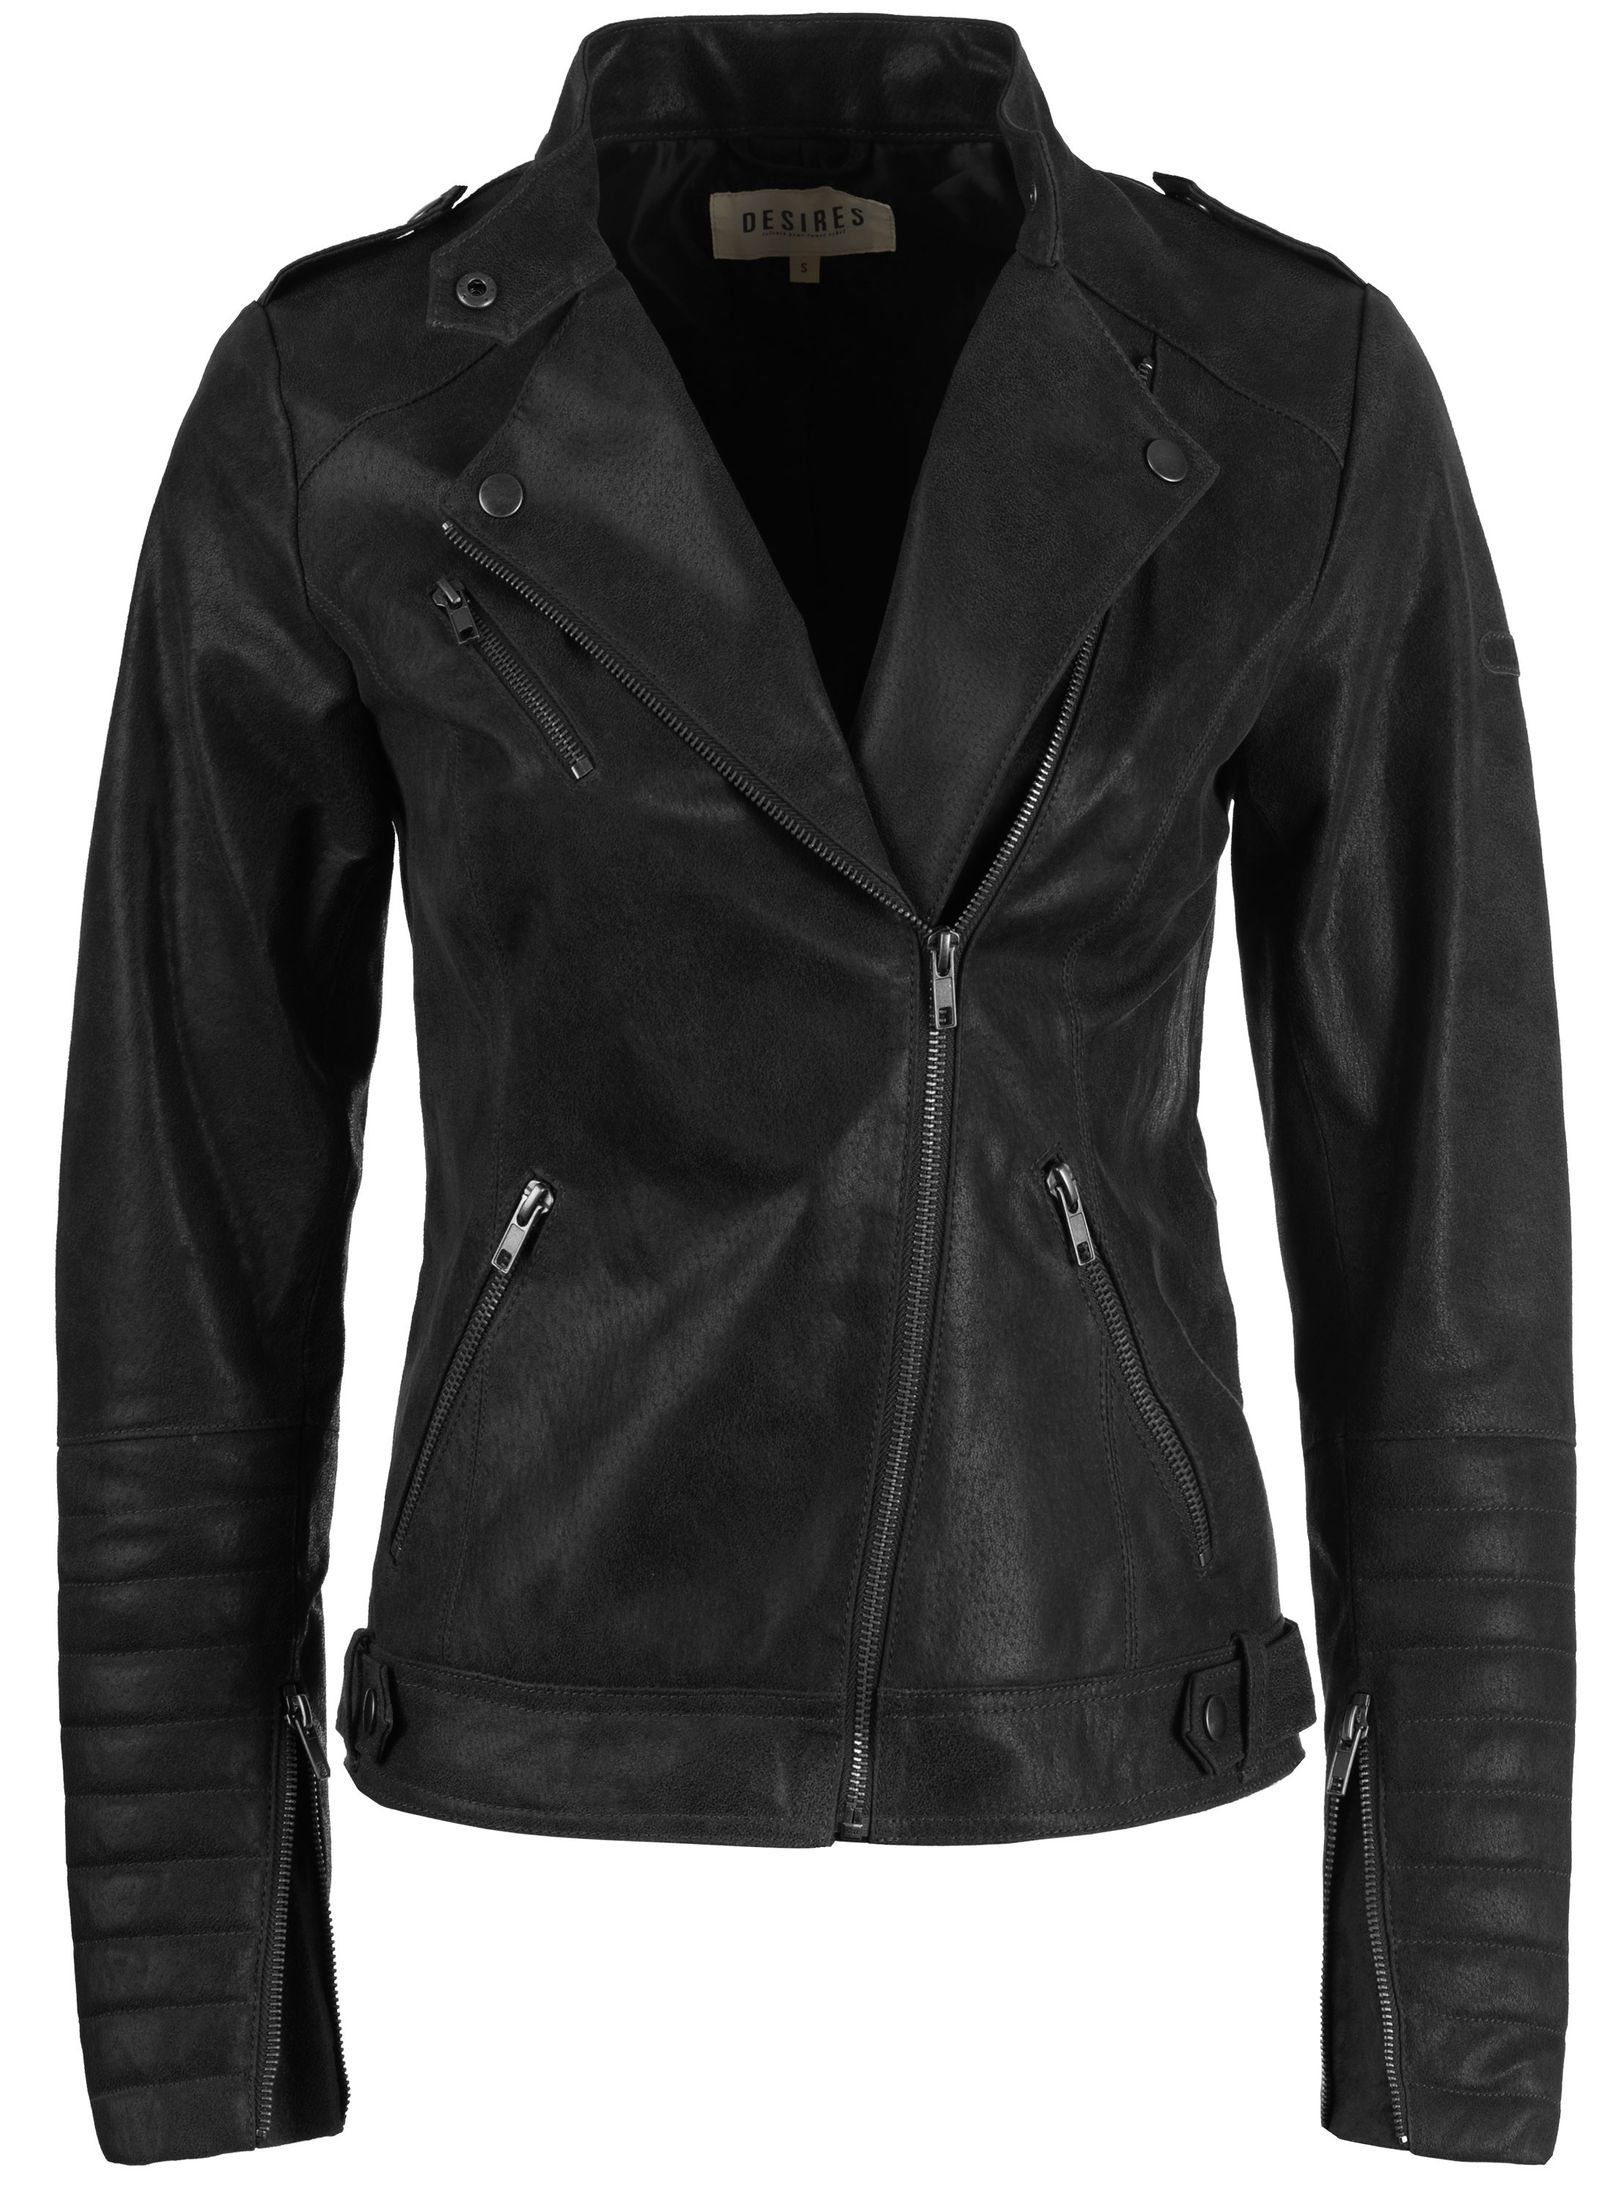 desires zalla damen lederjacke biker jacke rauleder ebay. Black Bedroom Furniture Sets. Home Design Ideas